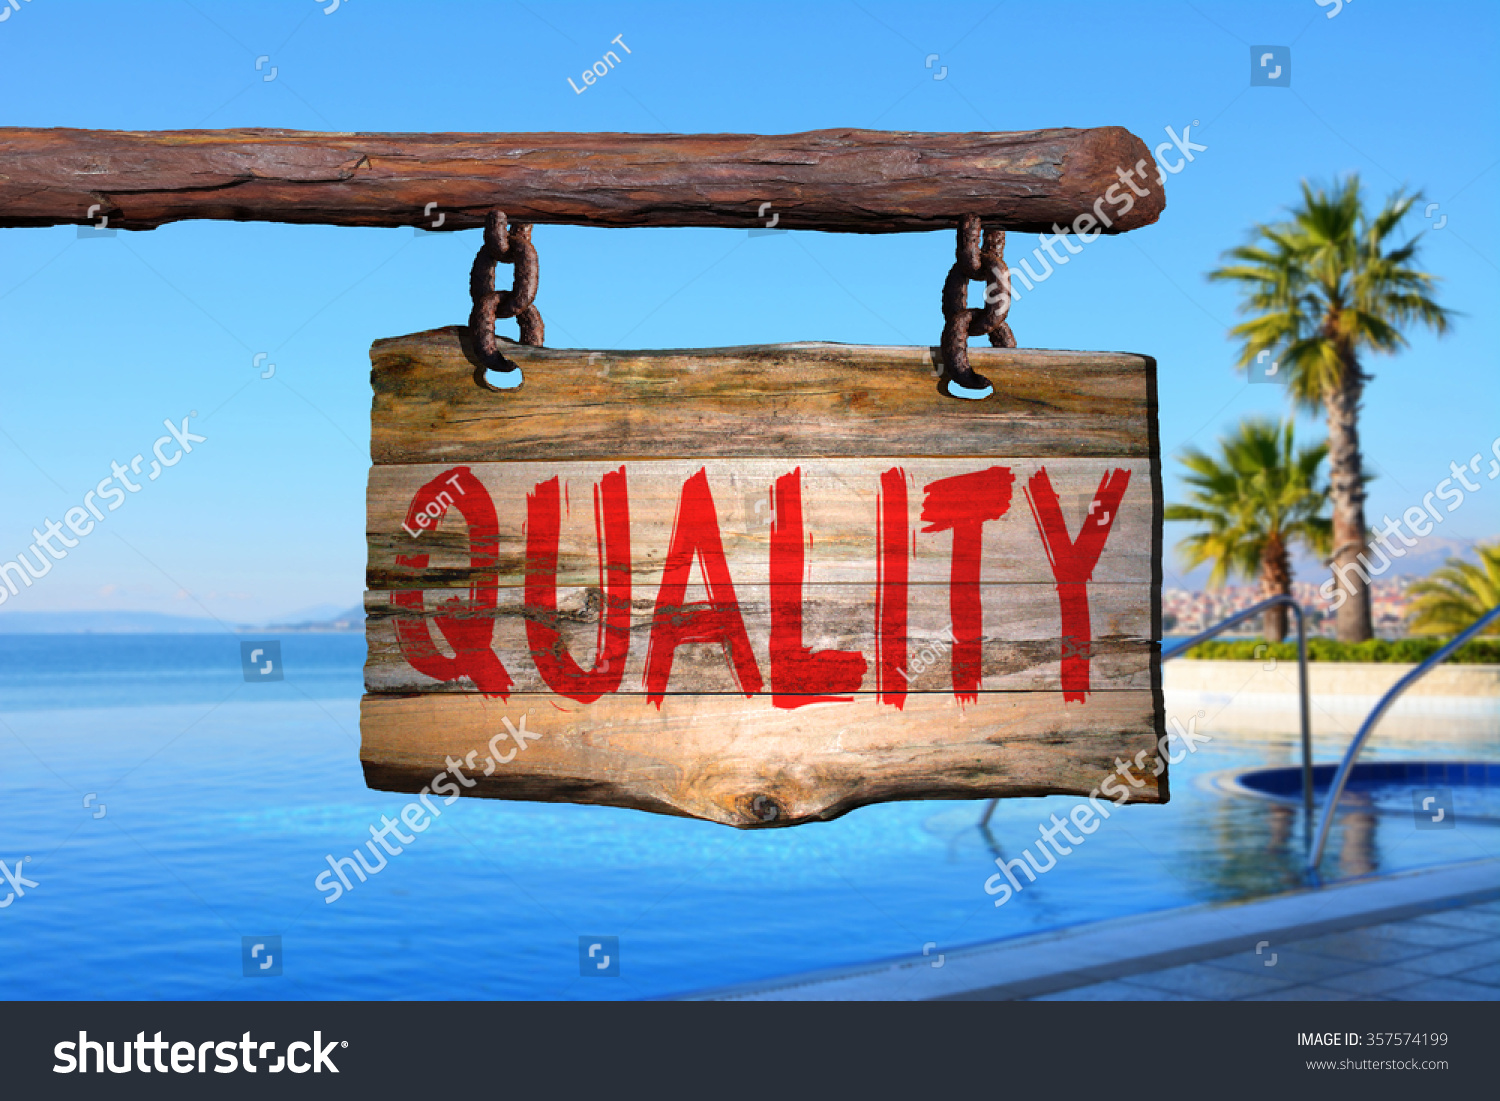 Quality motivational phrase sign on old wood with blurred background #357574199